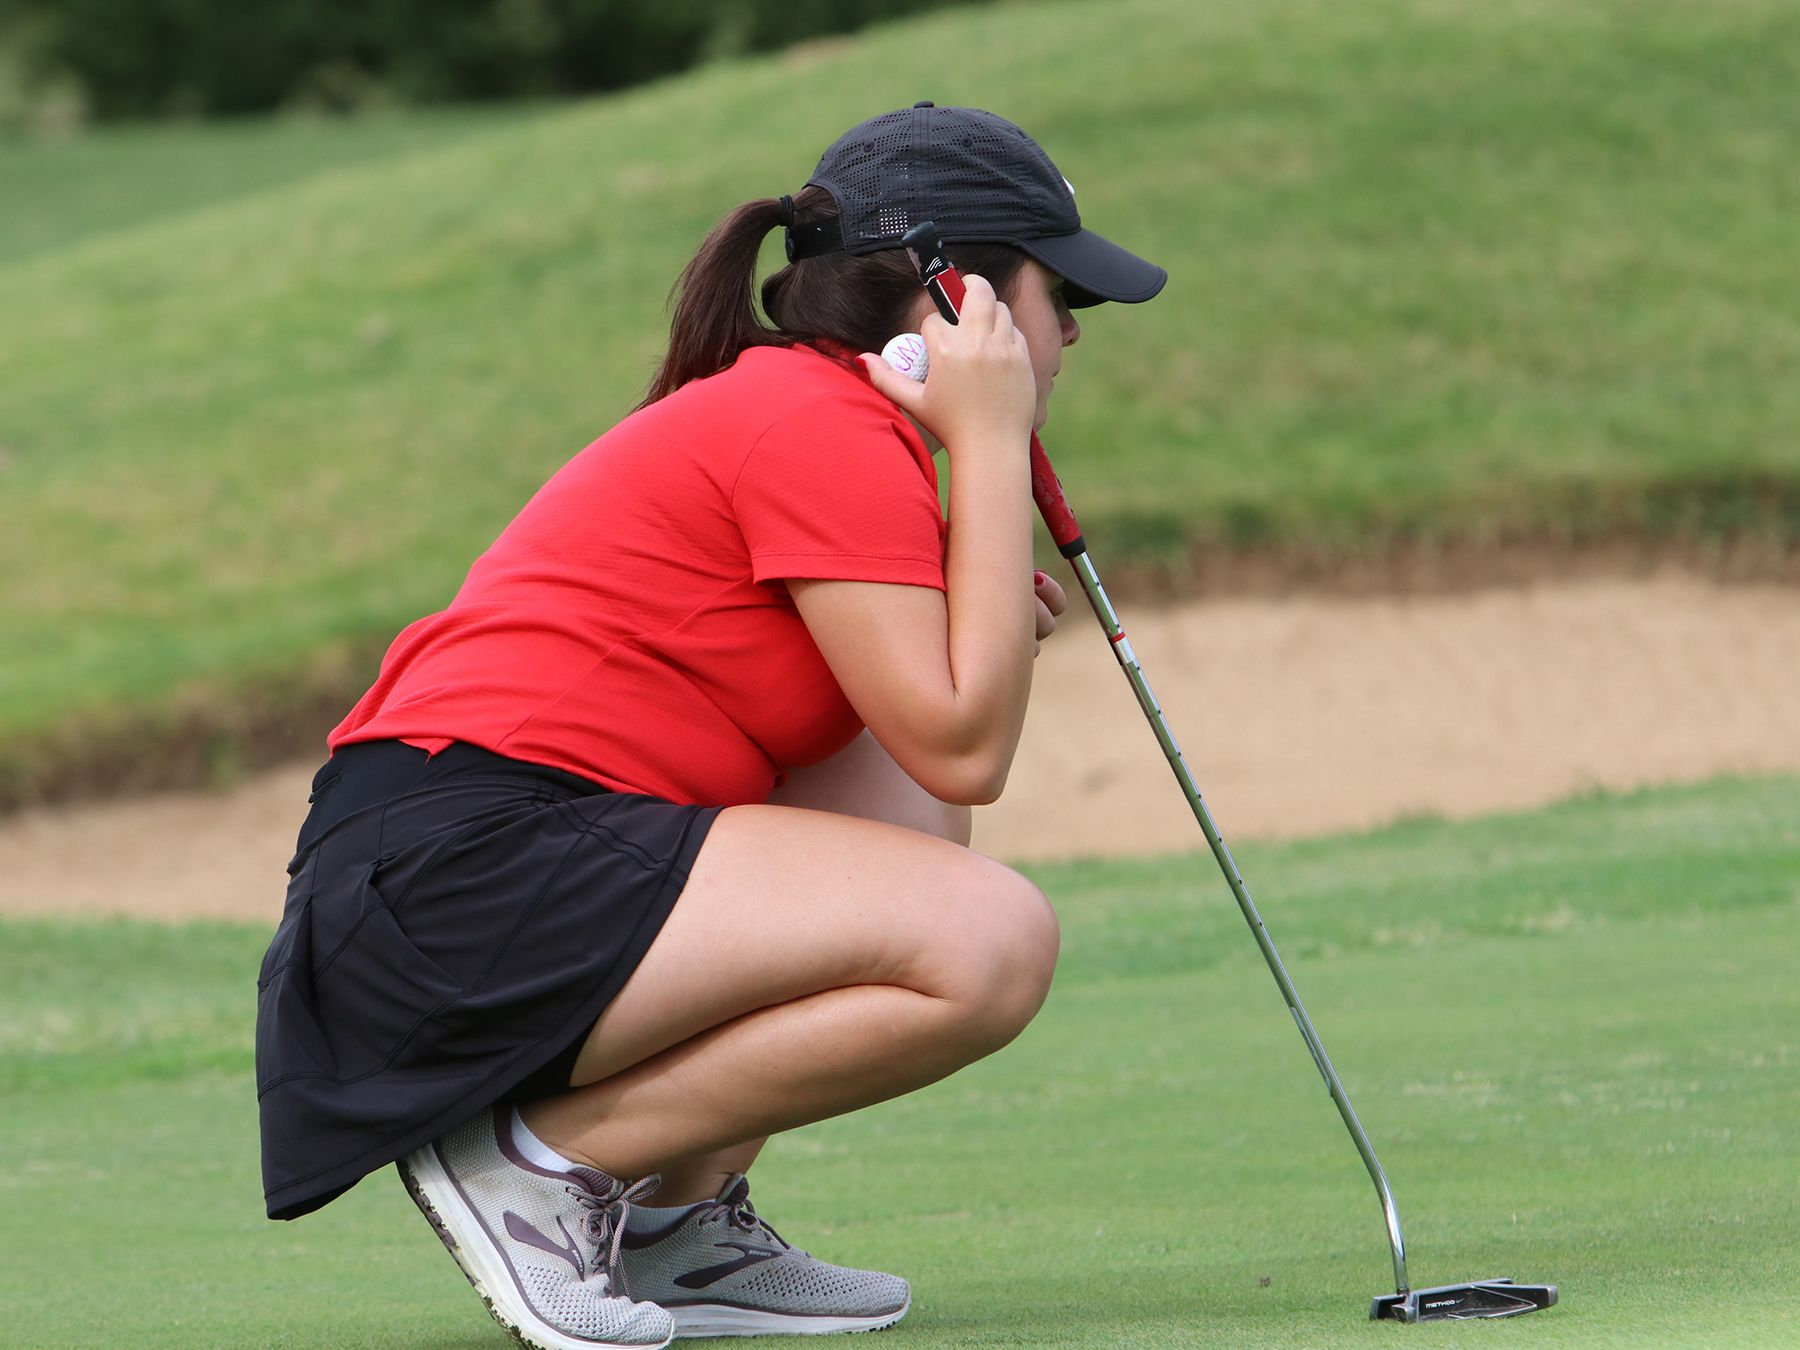 A CJ Golf player lines up her shot